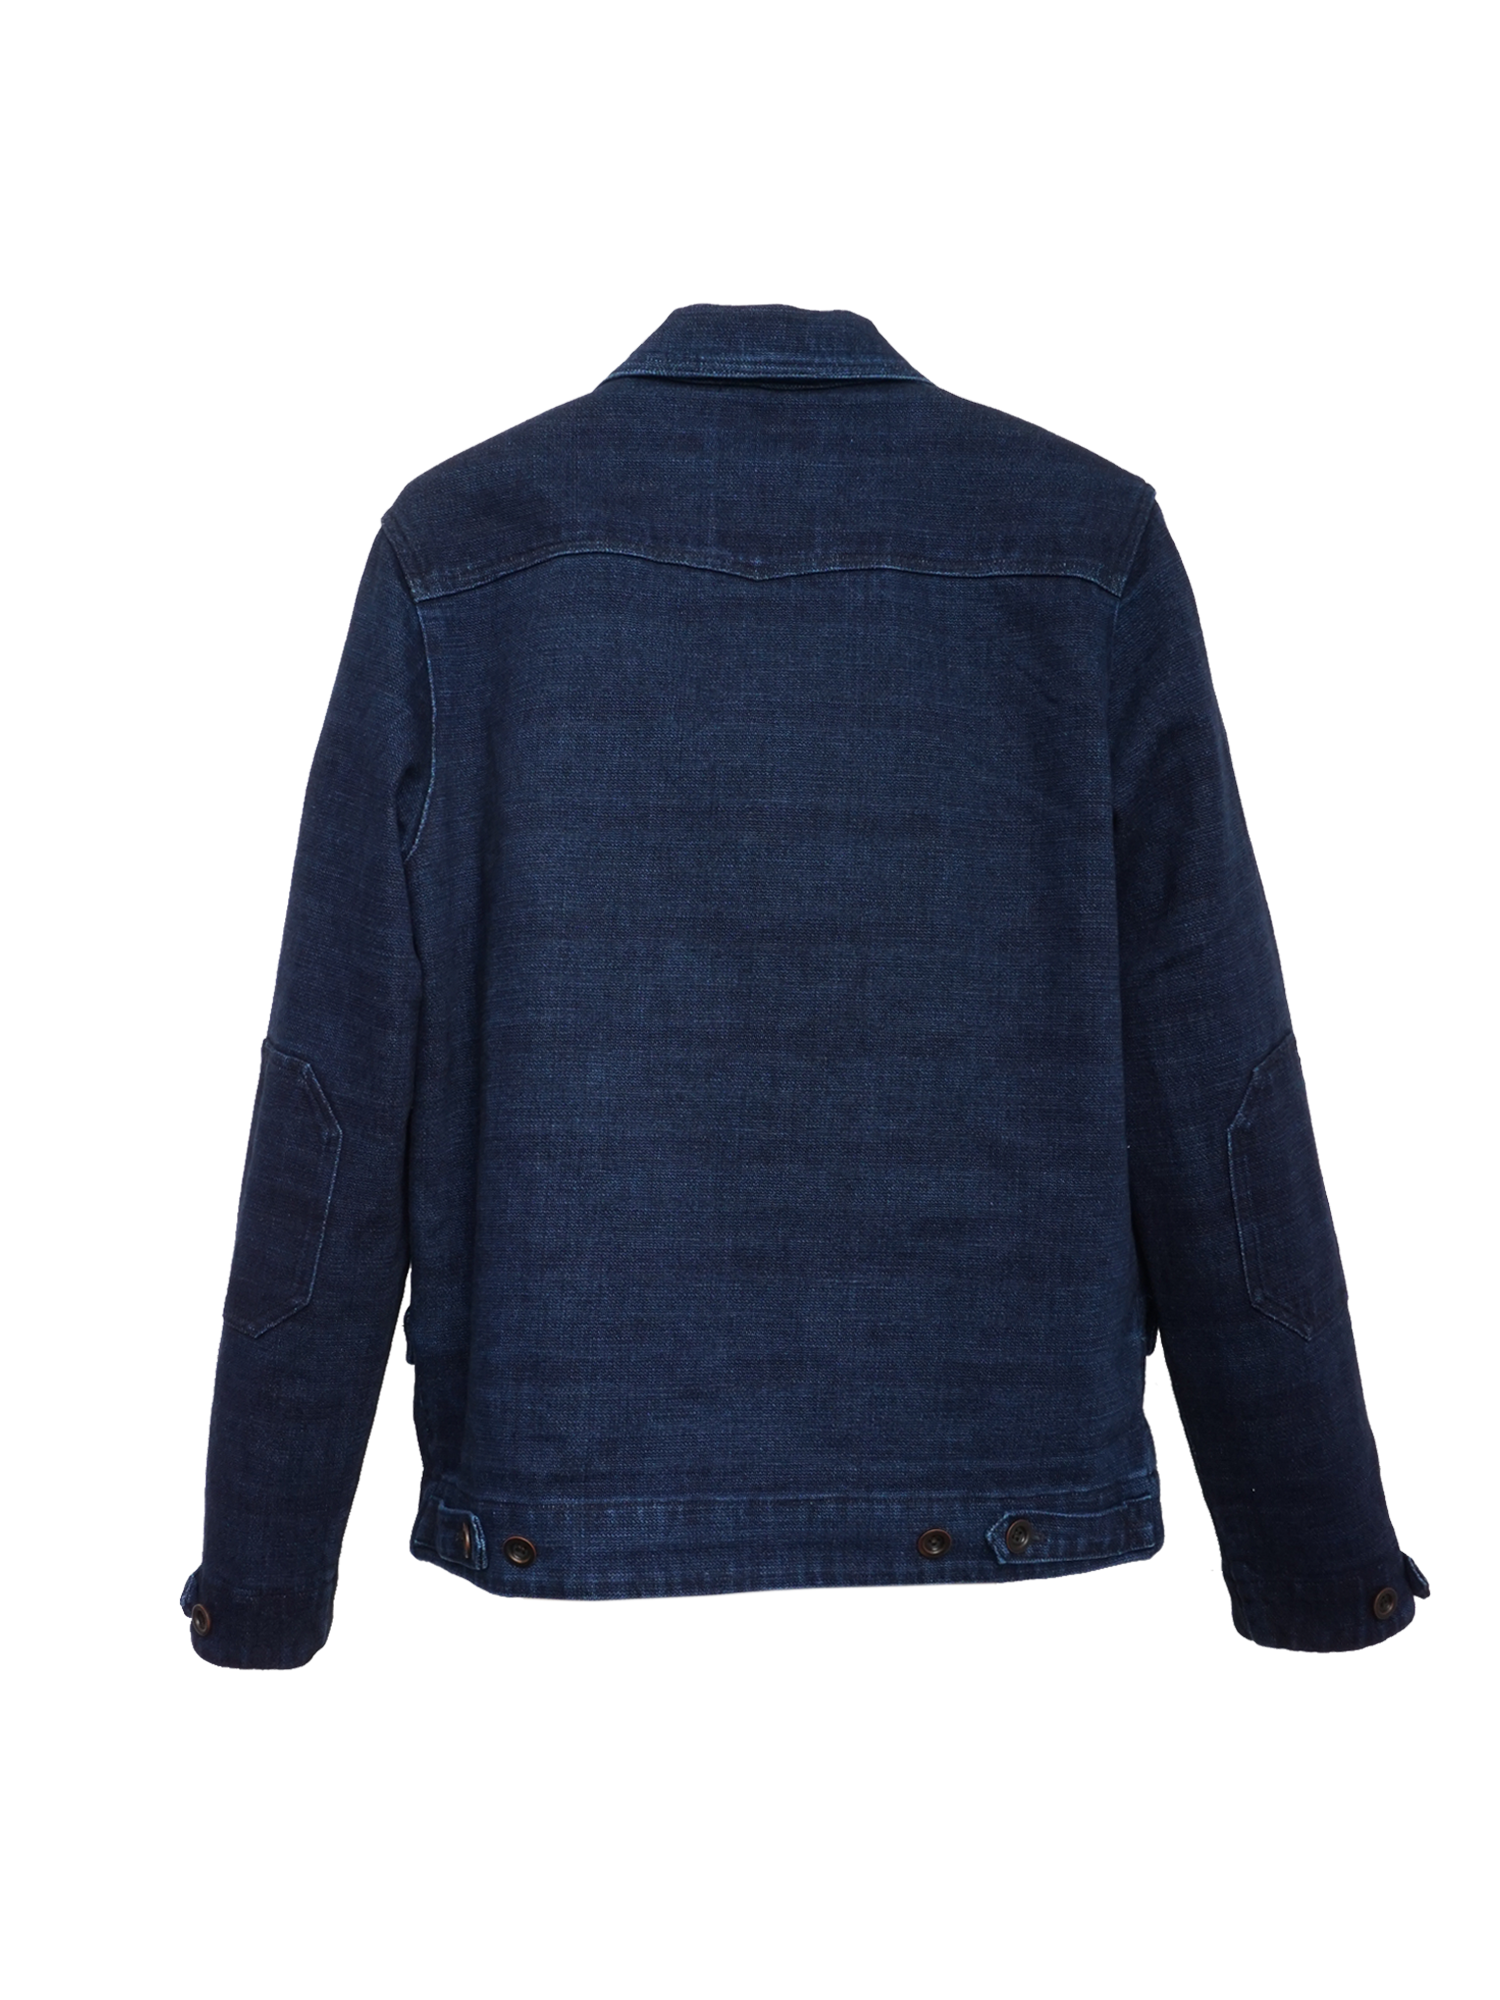 K5005 POLLUX Sakiori Denim Jacket